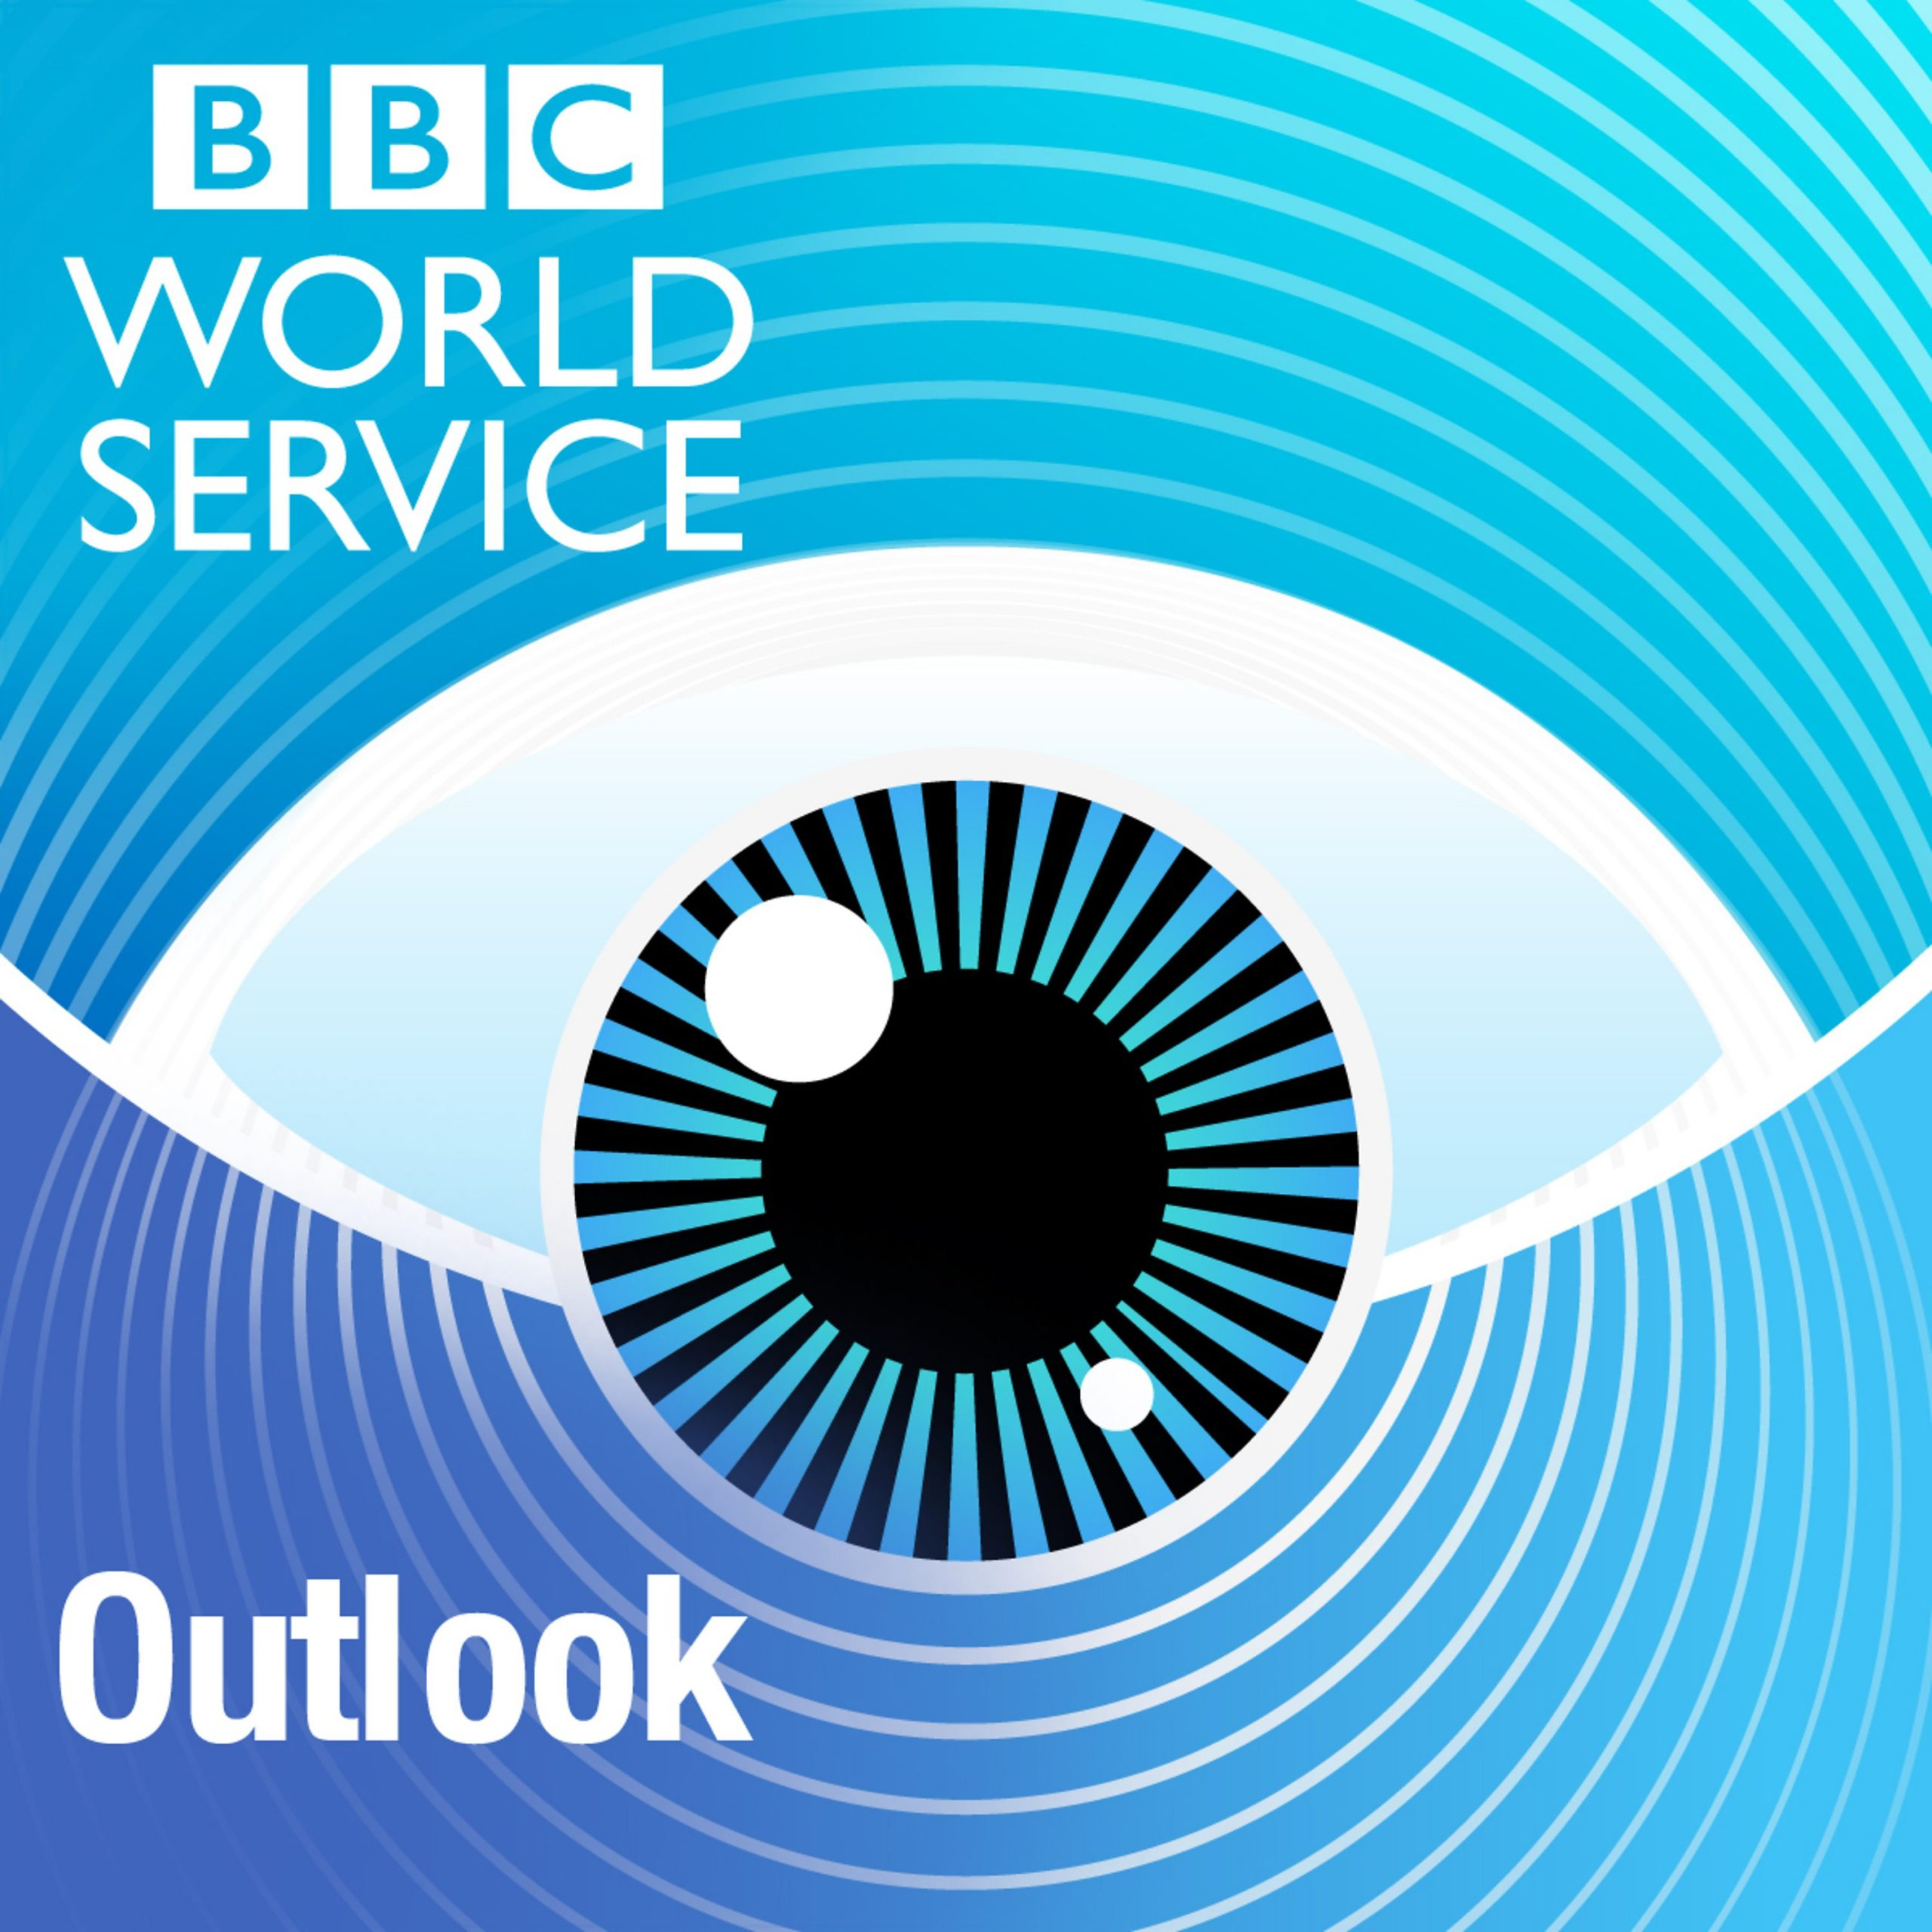 BBC Outlook